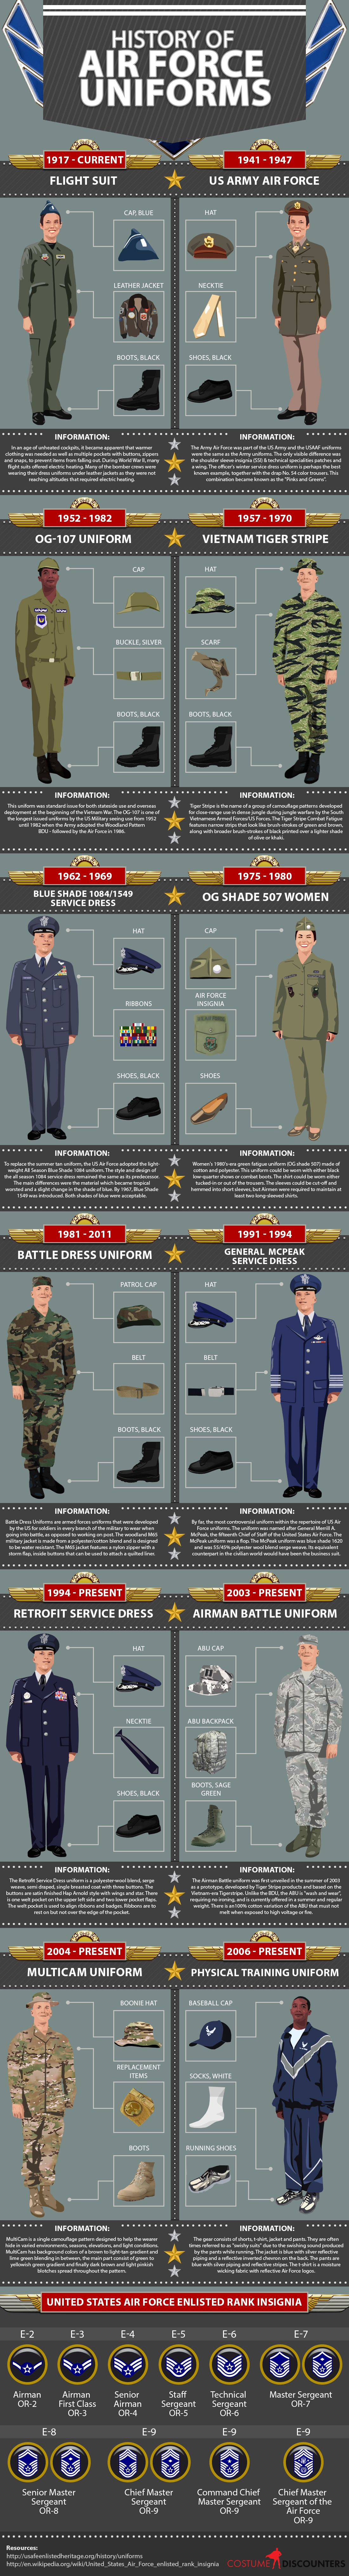 Us air force uniforms guide air force history and military us air force uniforms guide publicscrutiny